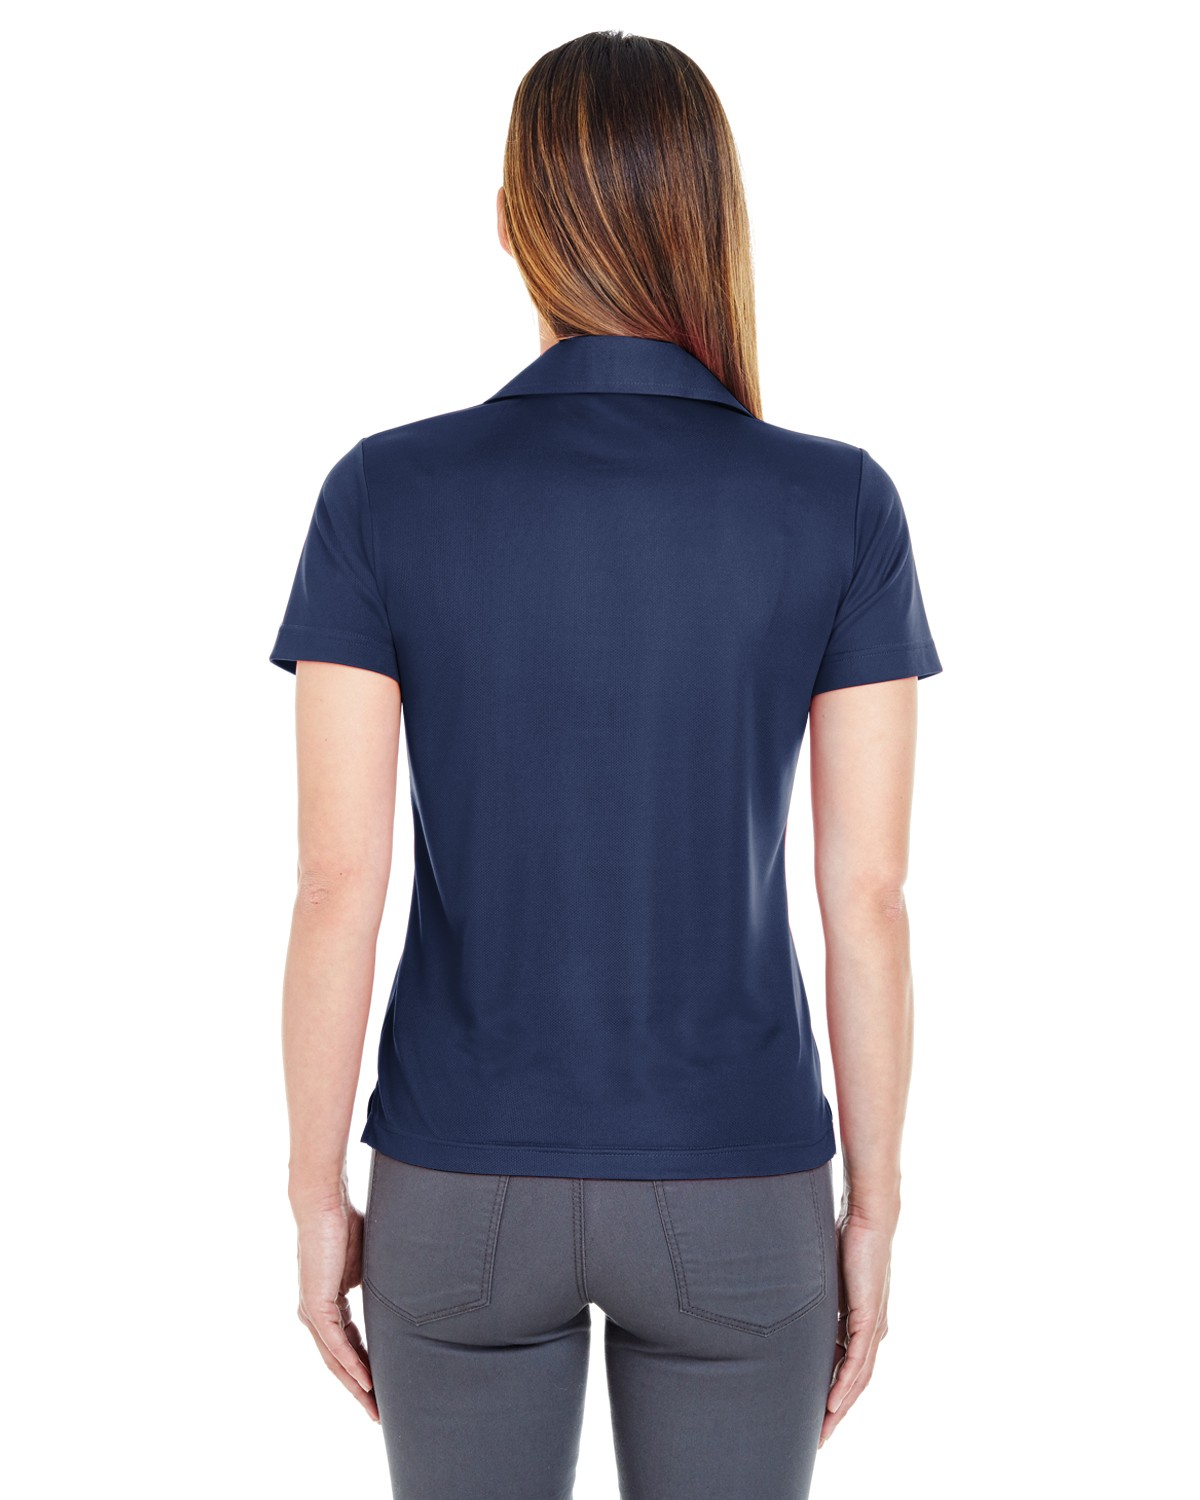 8407 UltraClub NAVY